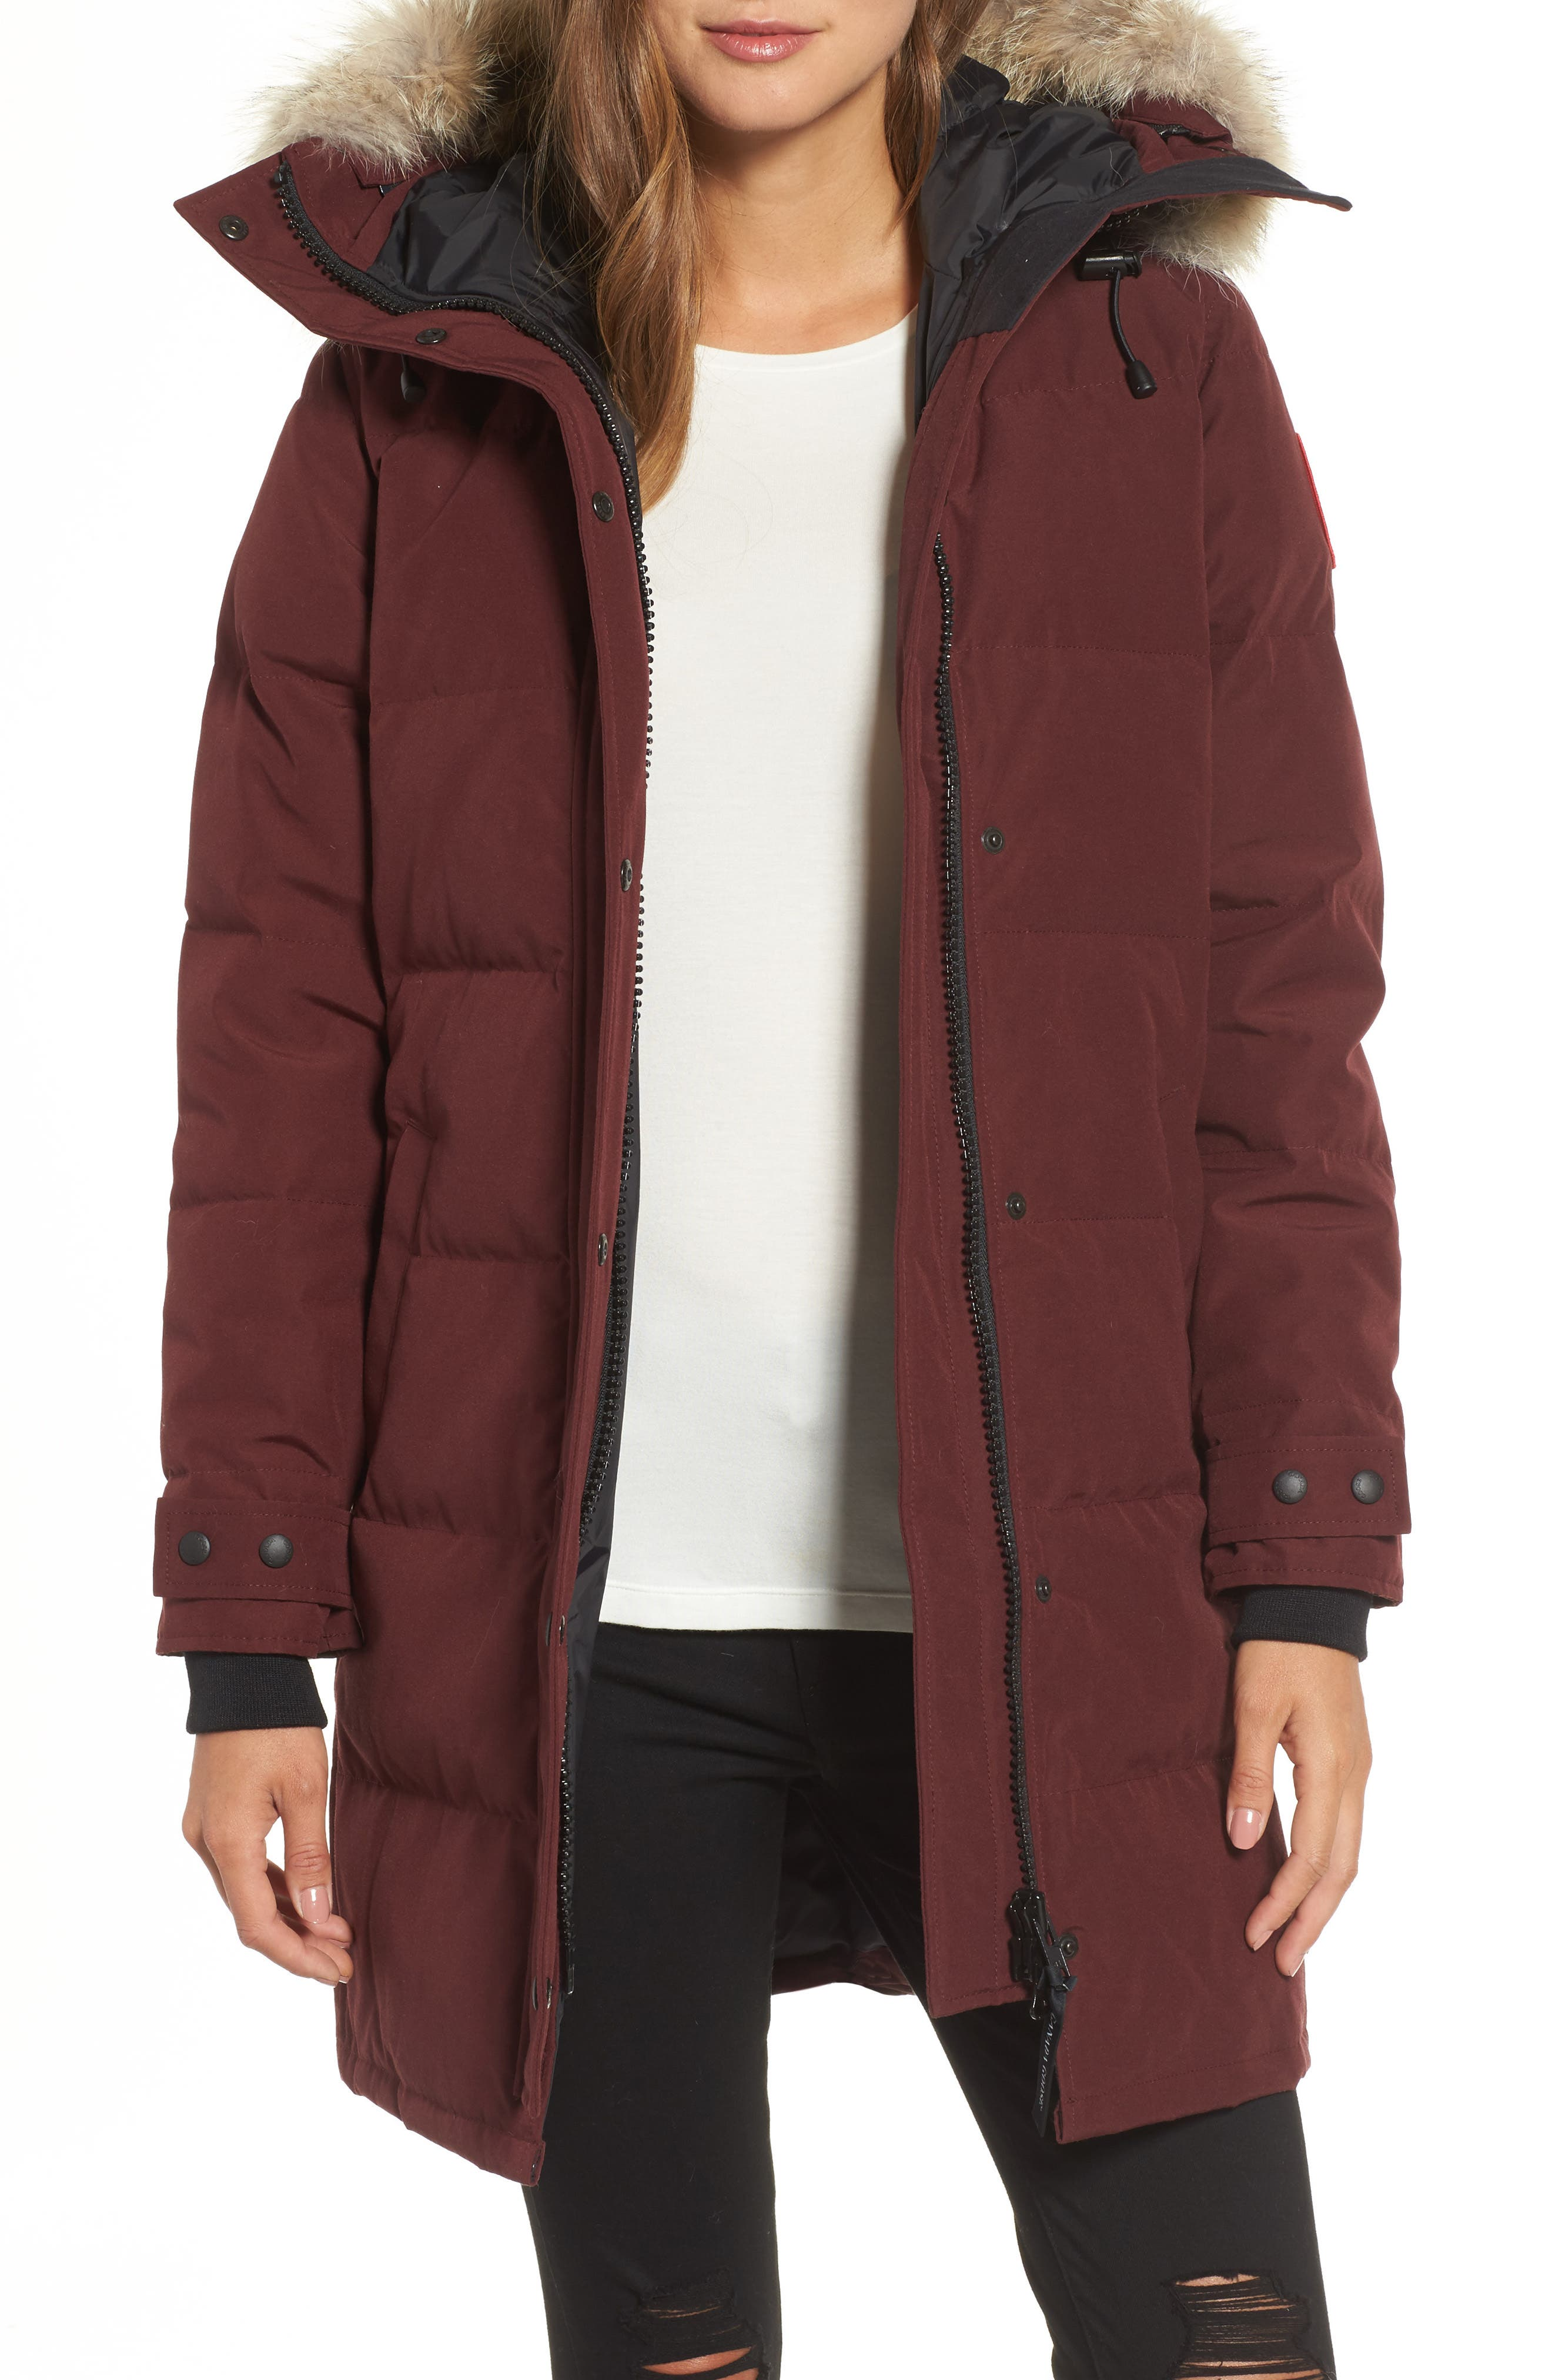 Women's Fur (Genuine) Coats & Jackets | Nordstrom